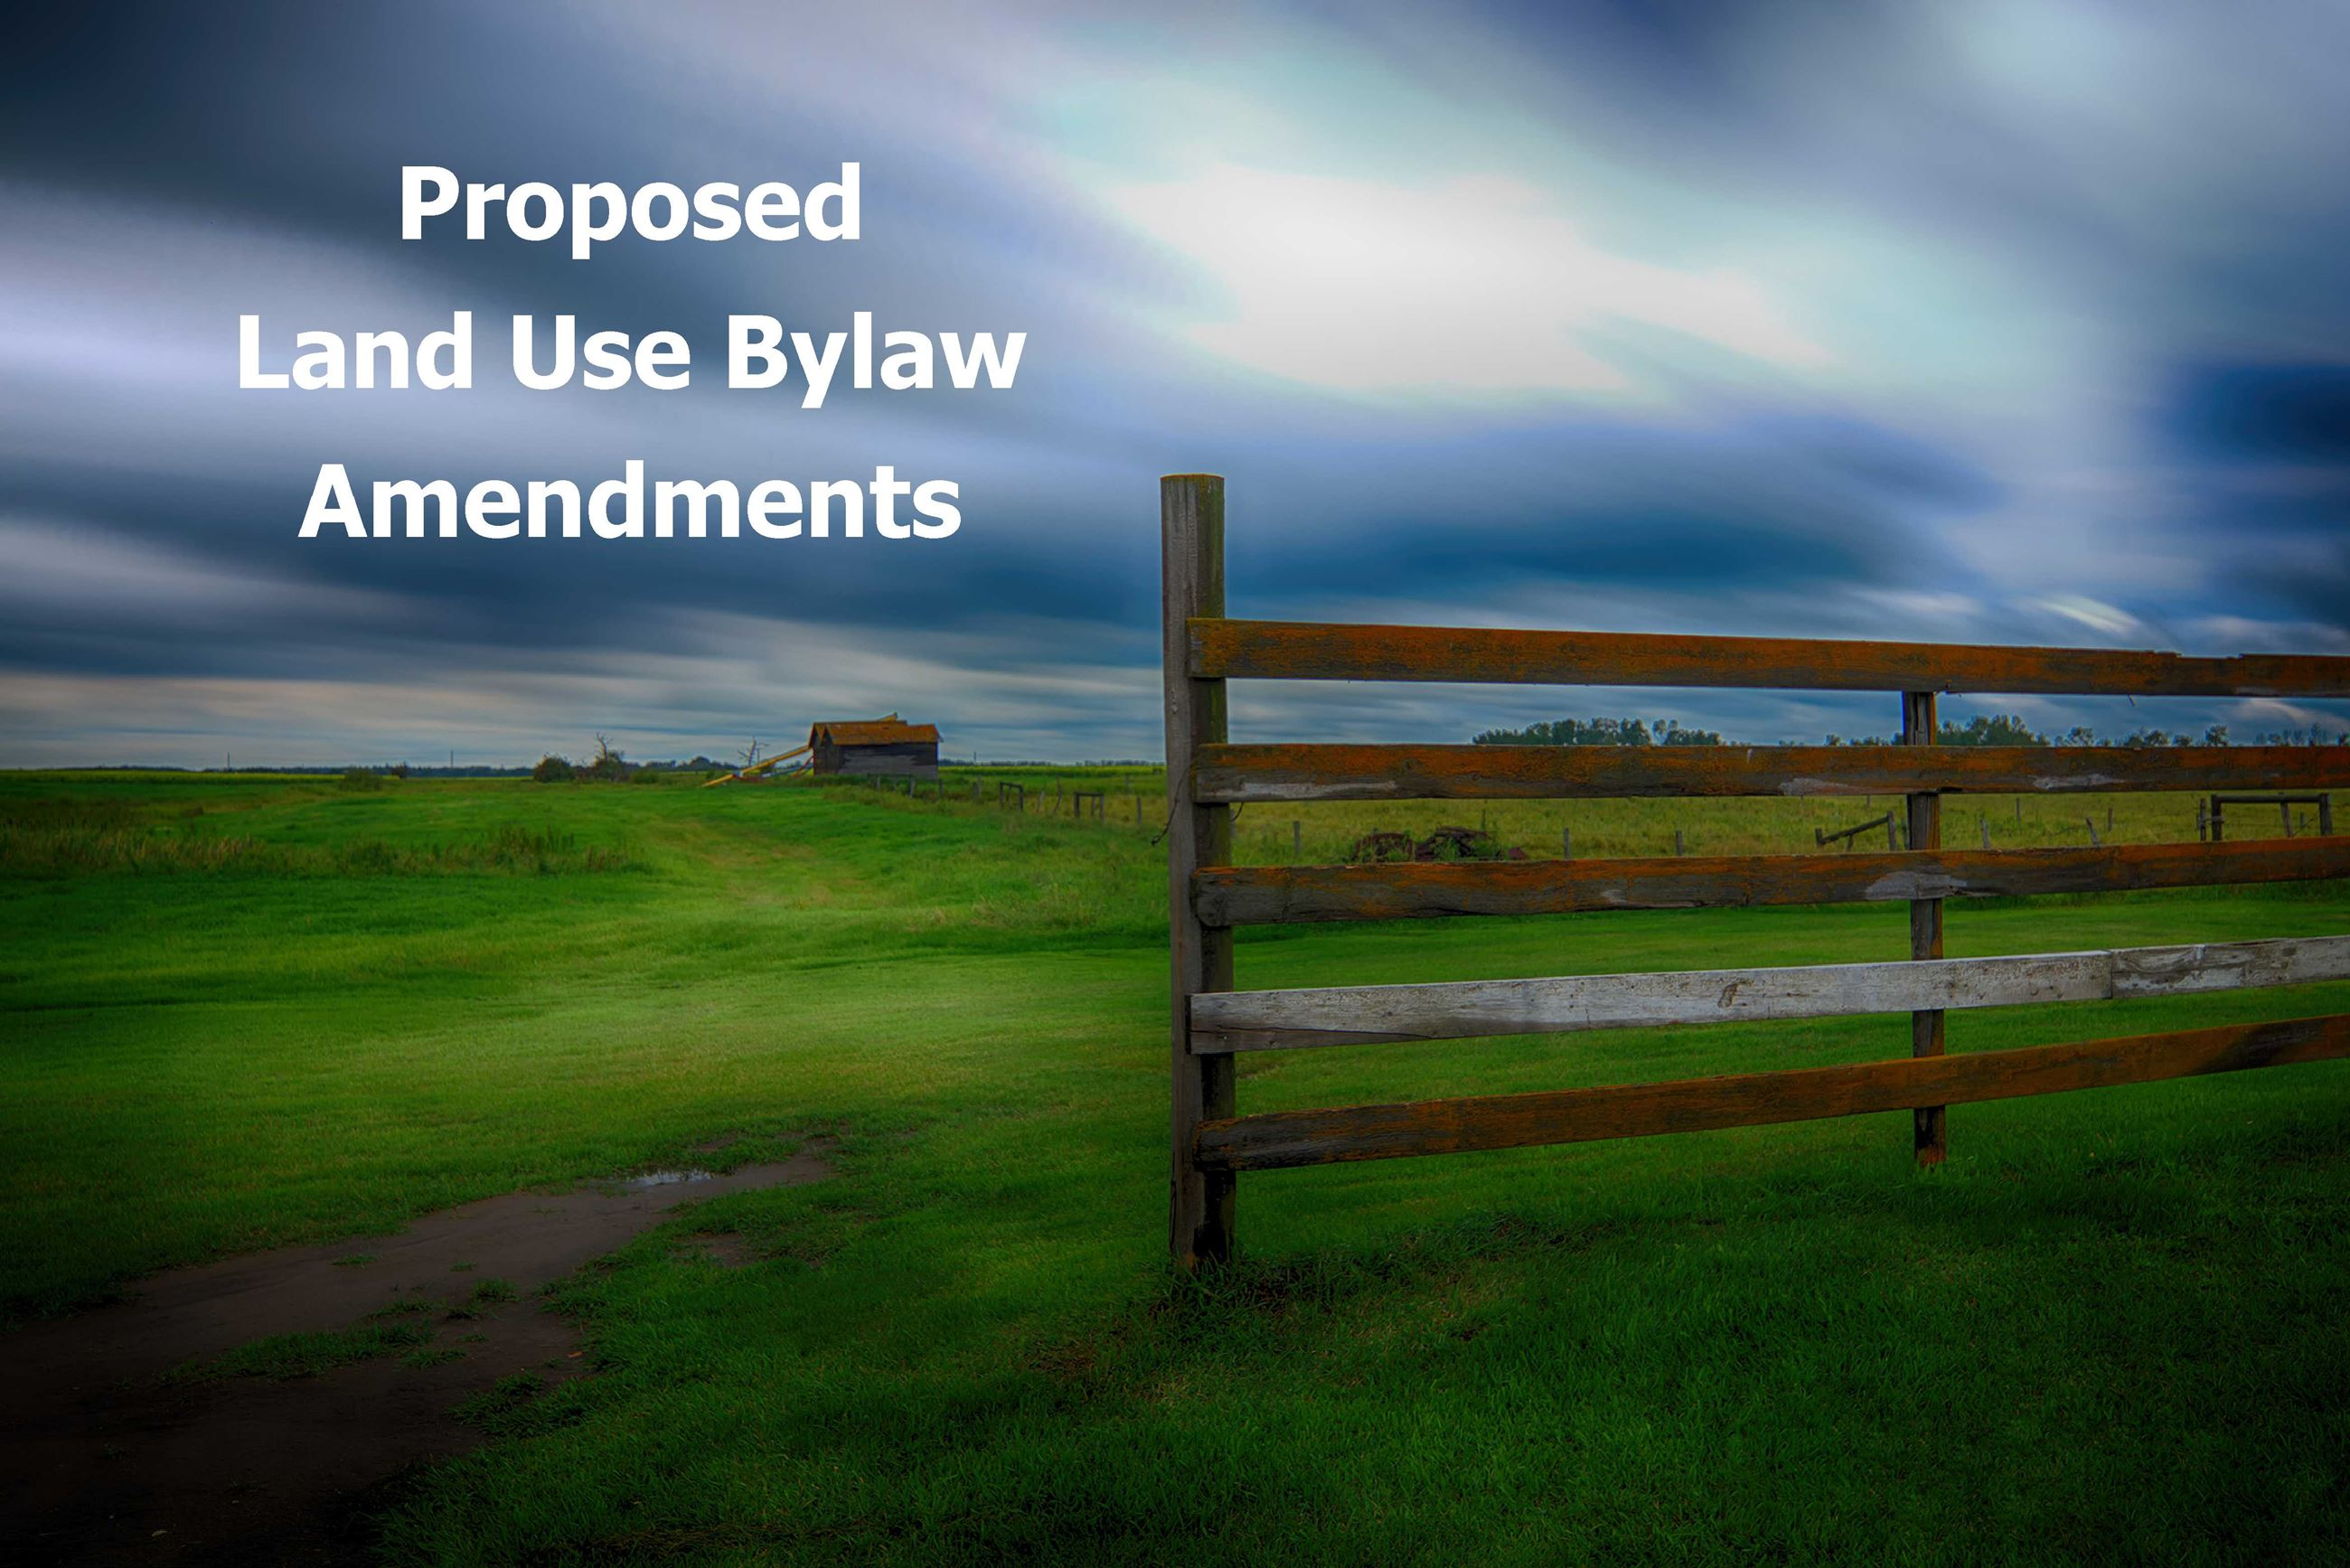 Land Use Bylaw Amendments